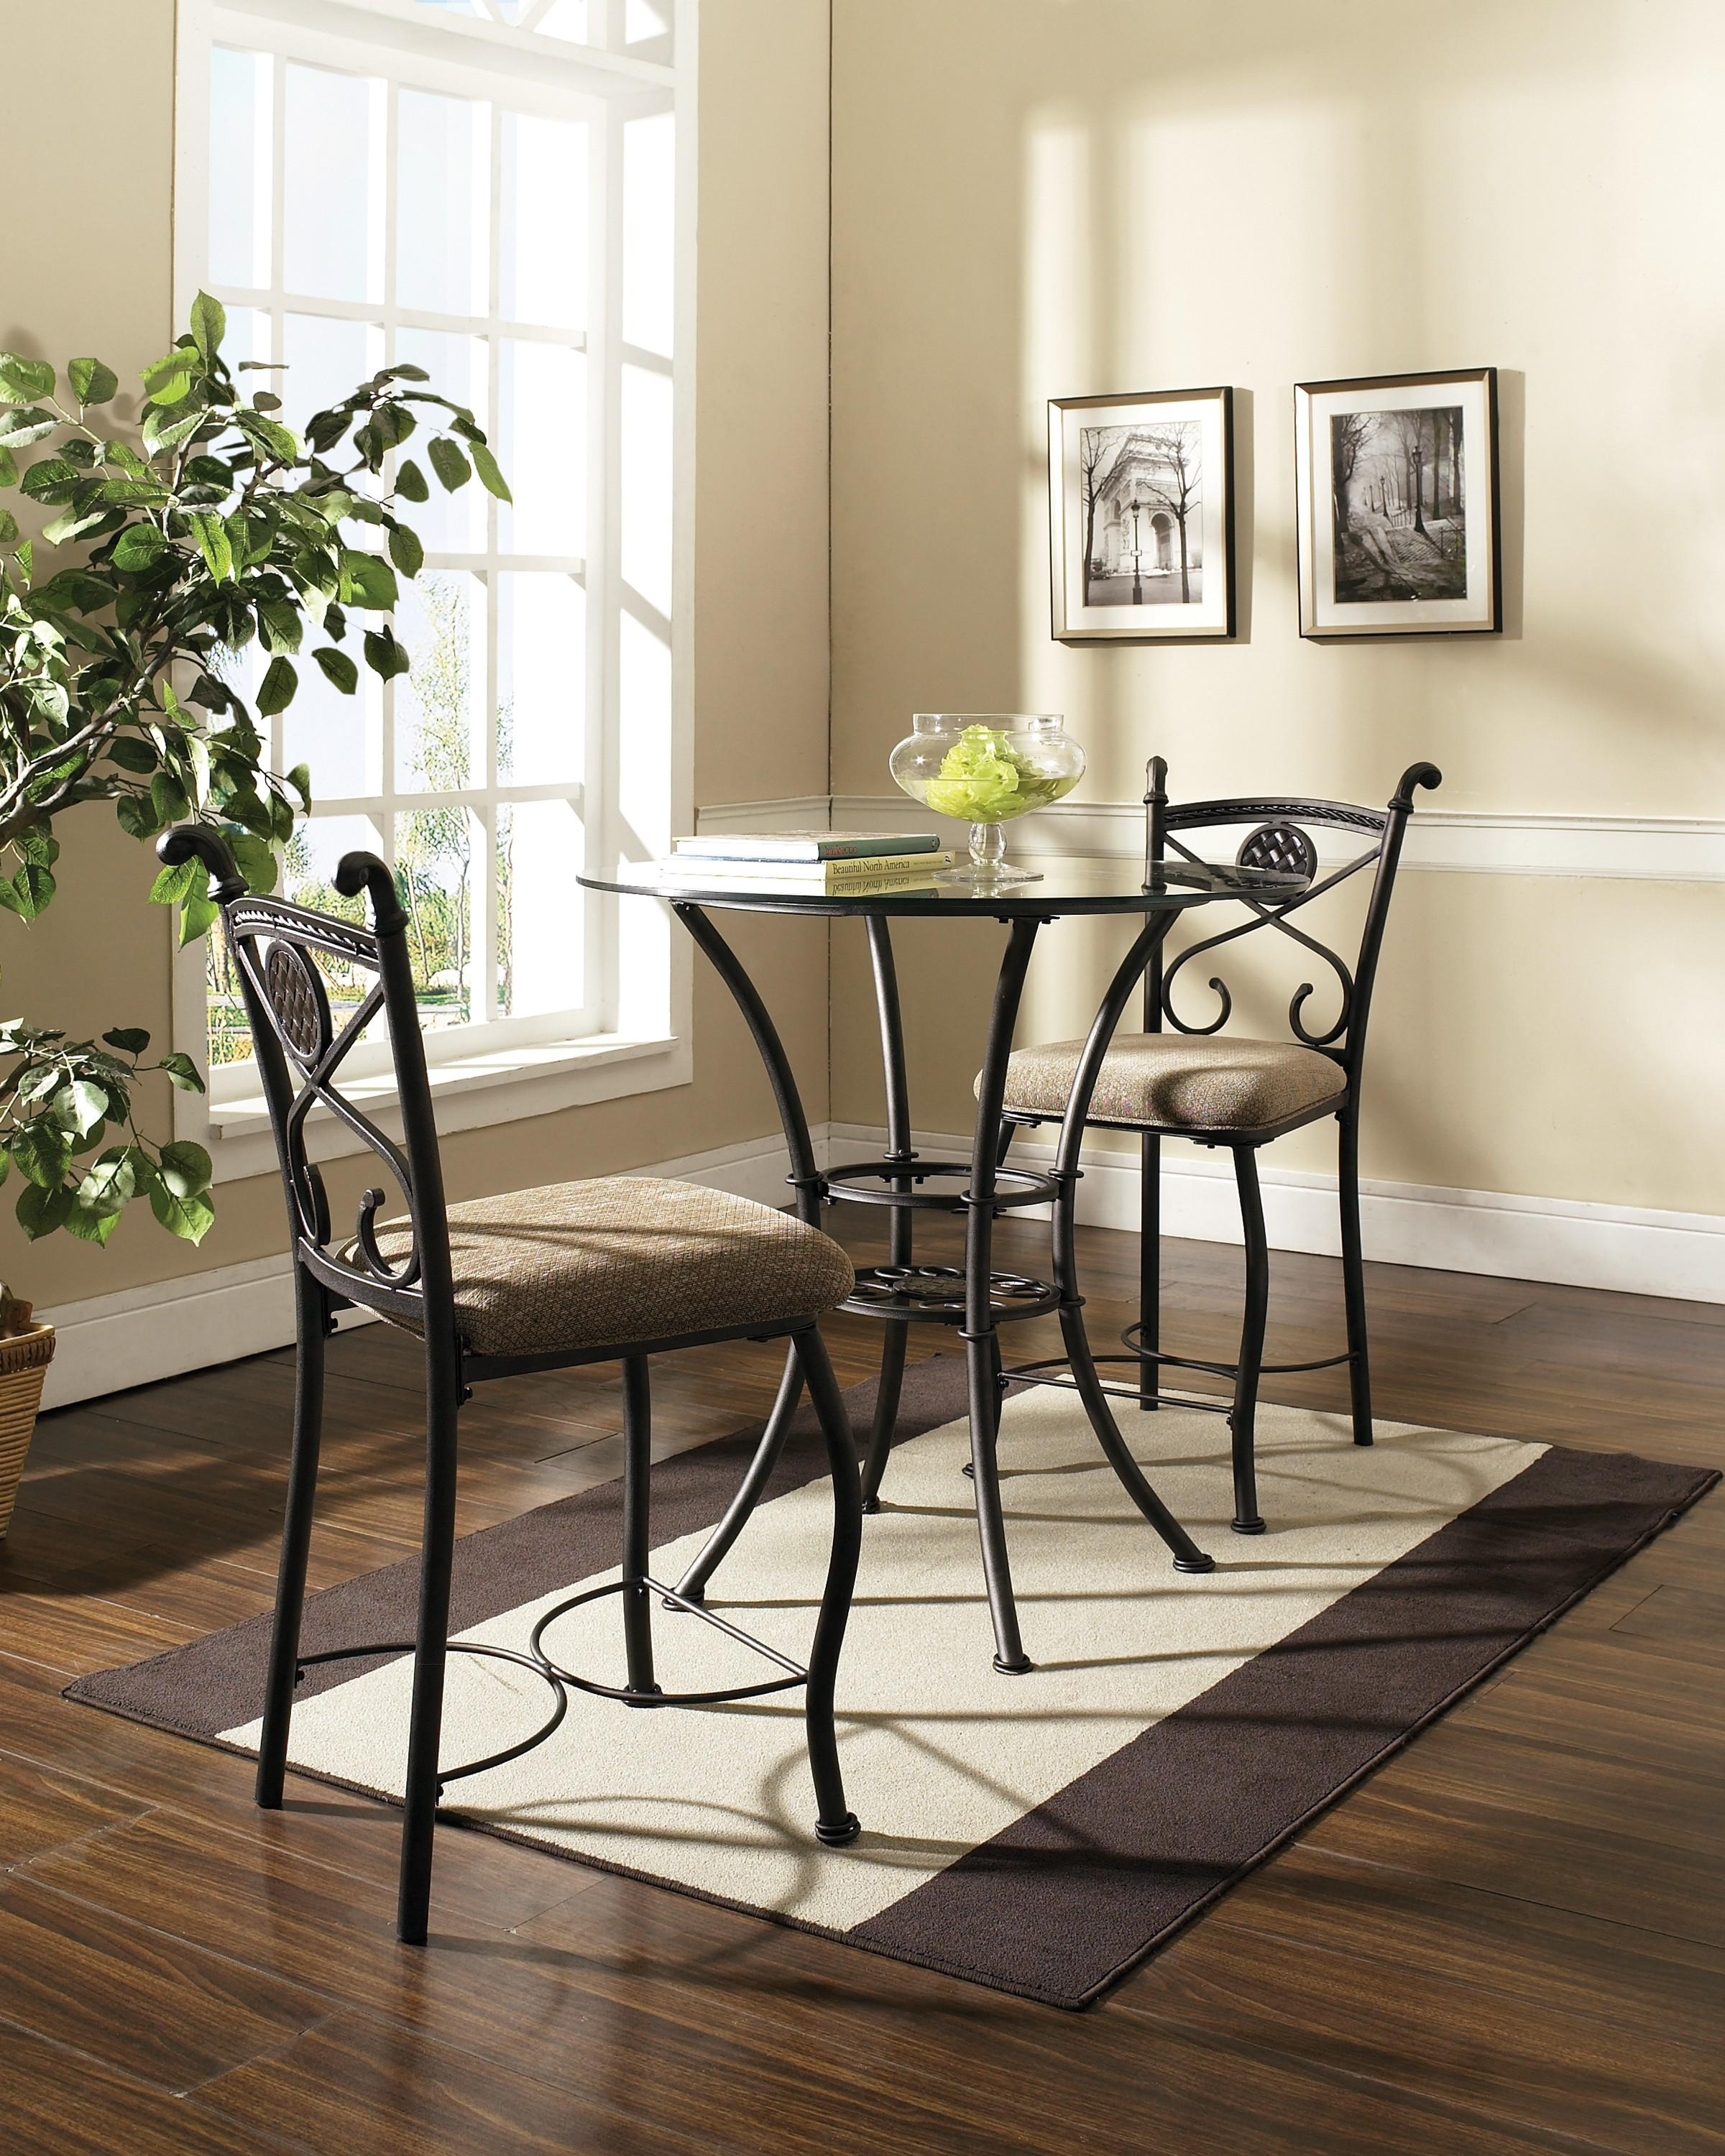 Steve Silver Brookfield 3 Piece Counter Dining Set | Northeast Factory Direct | Pub Table and Stool Set Cleveland Eastlake Westlake Mentor Medina Ohio & Steve Silver Brookfield 3 Piece Counter Dining Set | Northeast ...